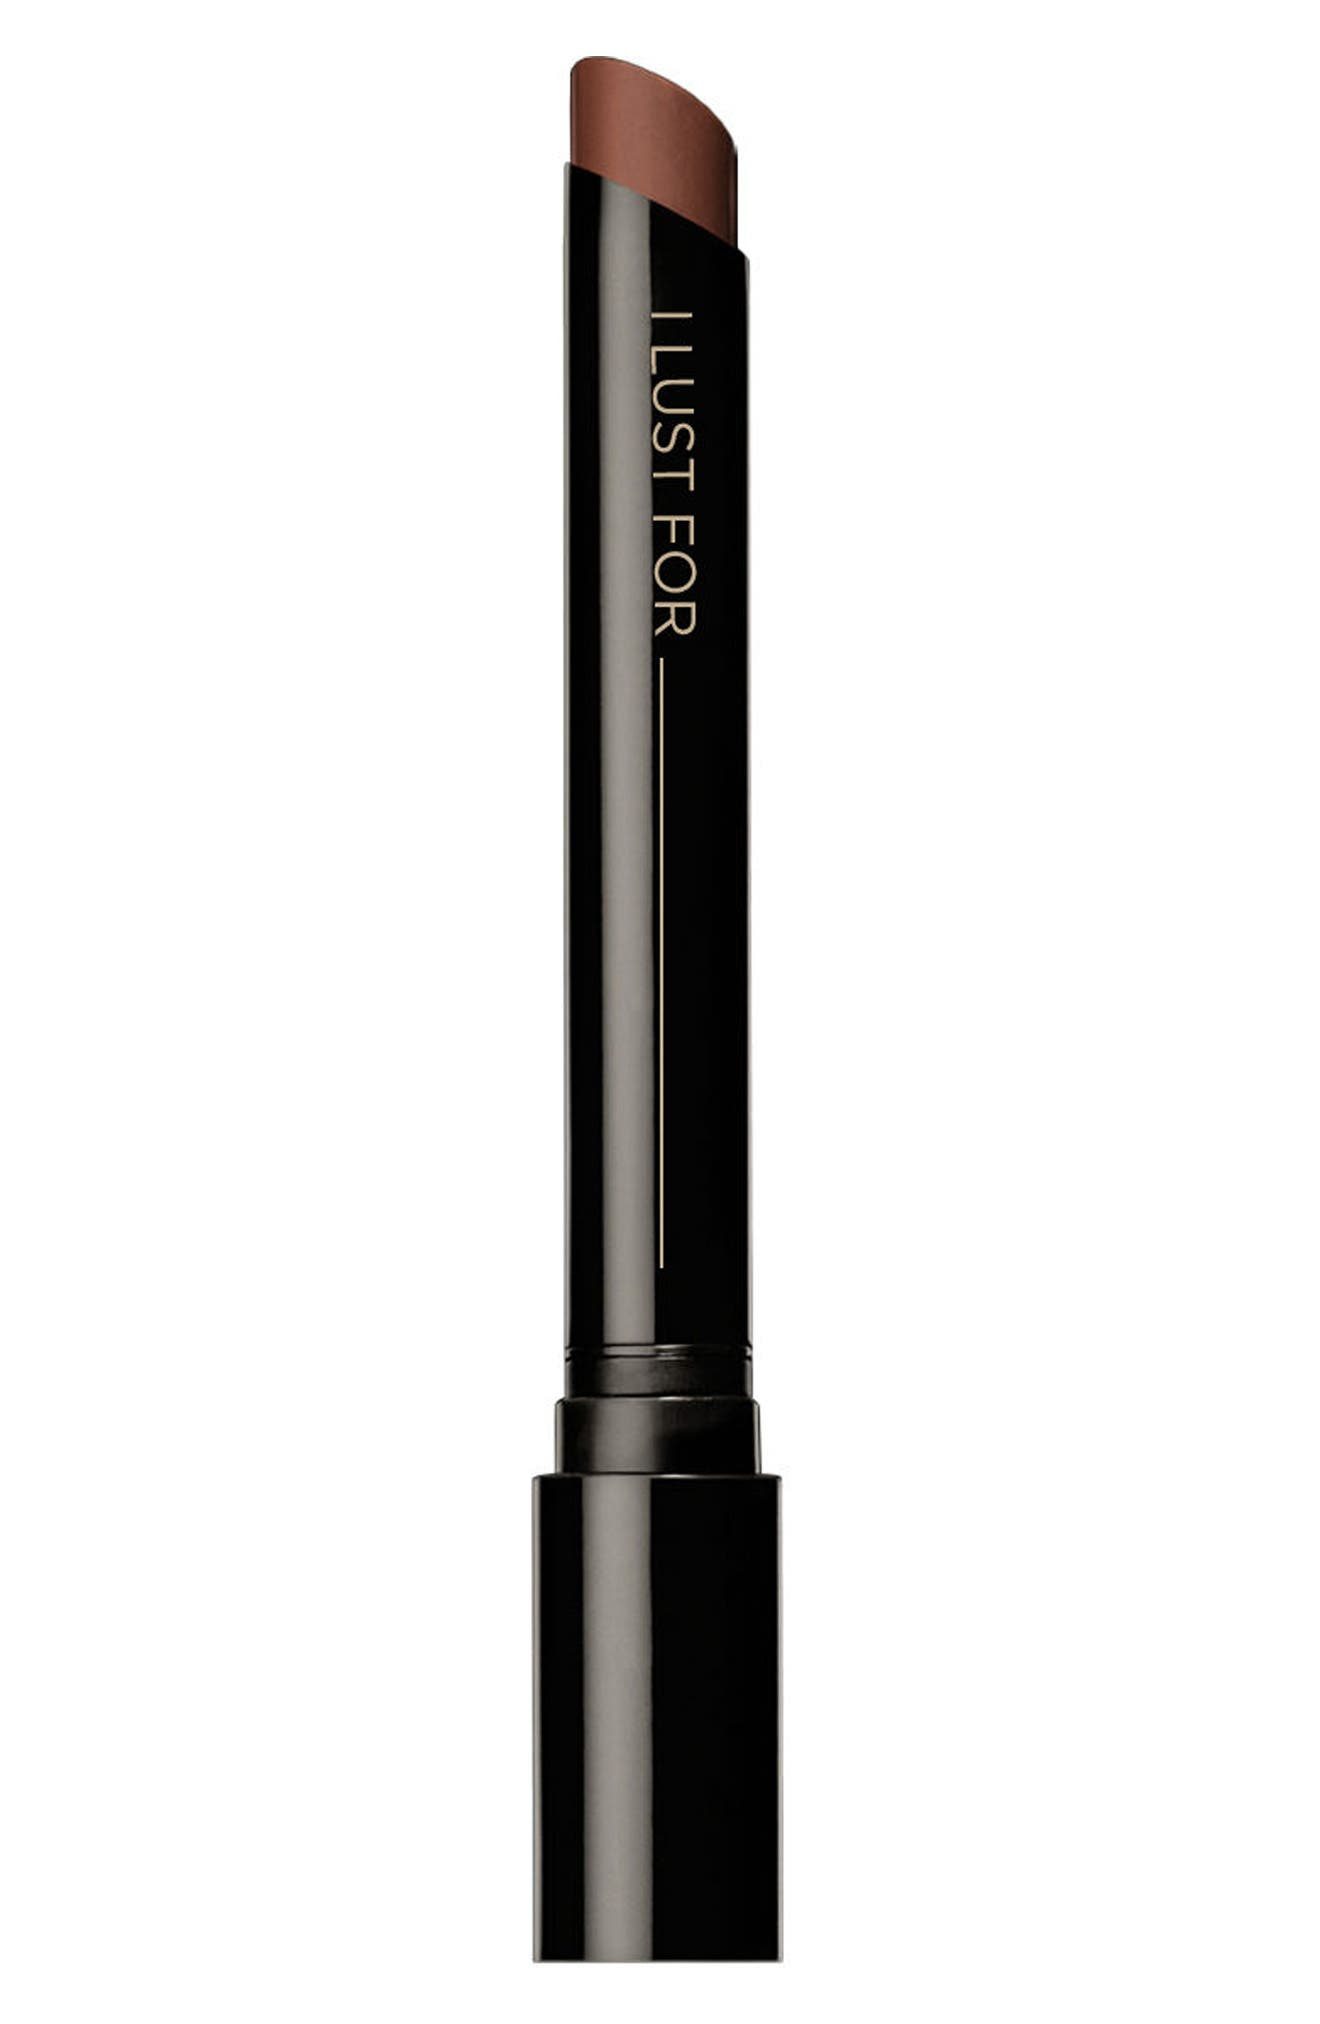 Confession Ultra Slim High Intensity Refillable Lipstick Refill,                             Alternate thumbnail 2, color,                             I LUST FOR - PEACHY BEIGE